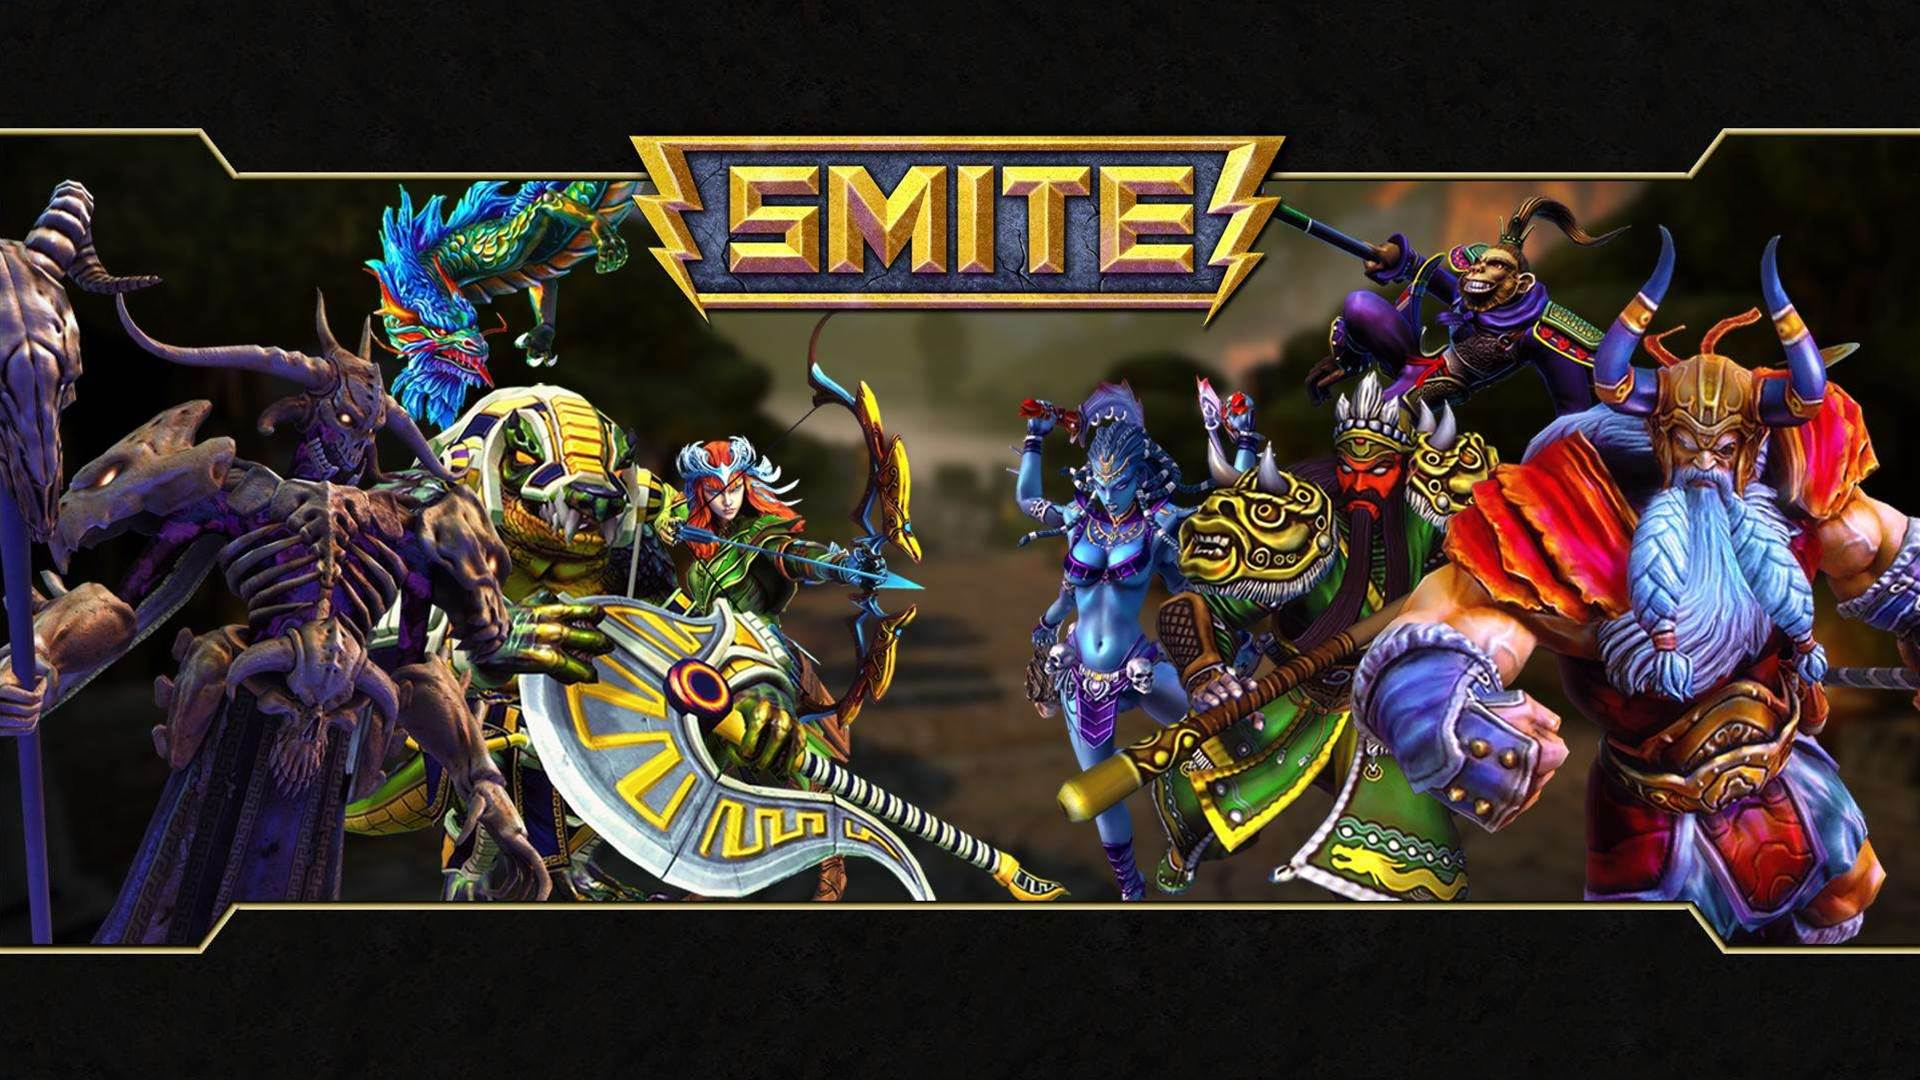 Smite is coming to PS4 - get your alpha key now!